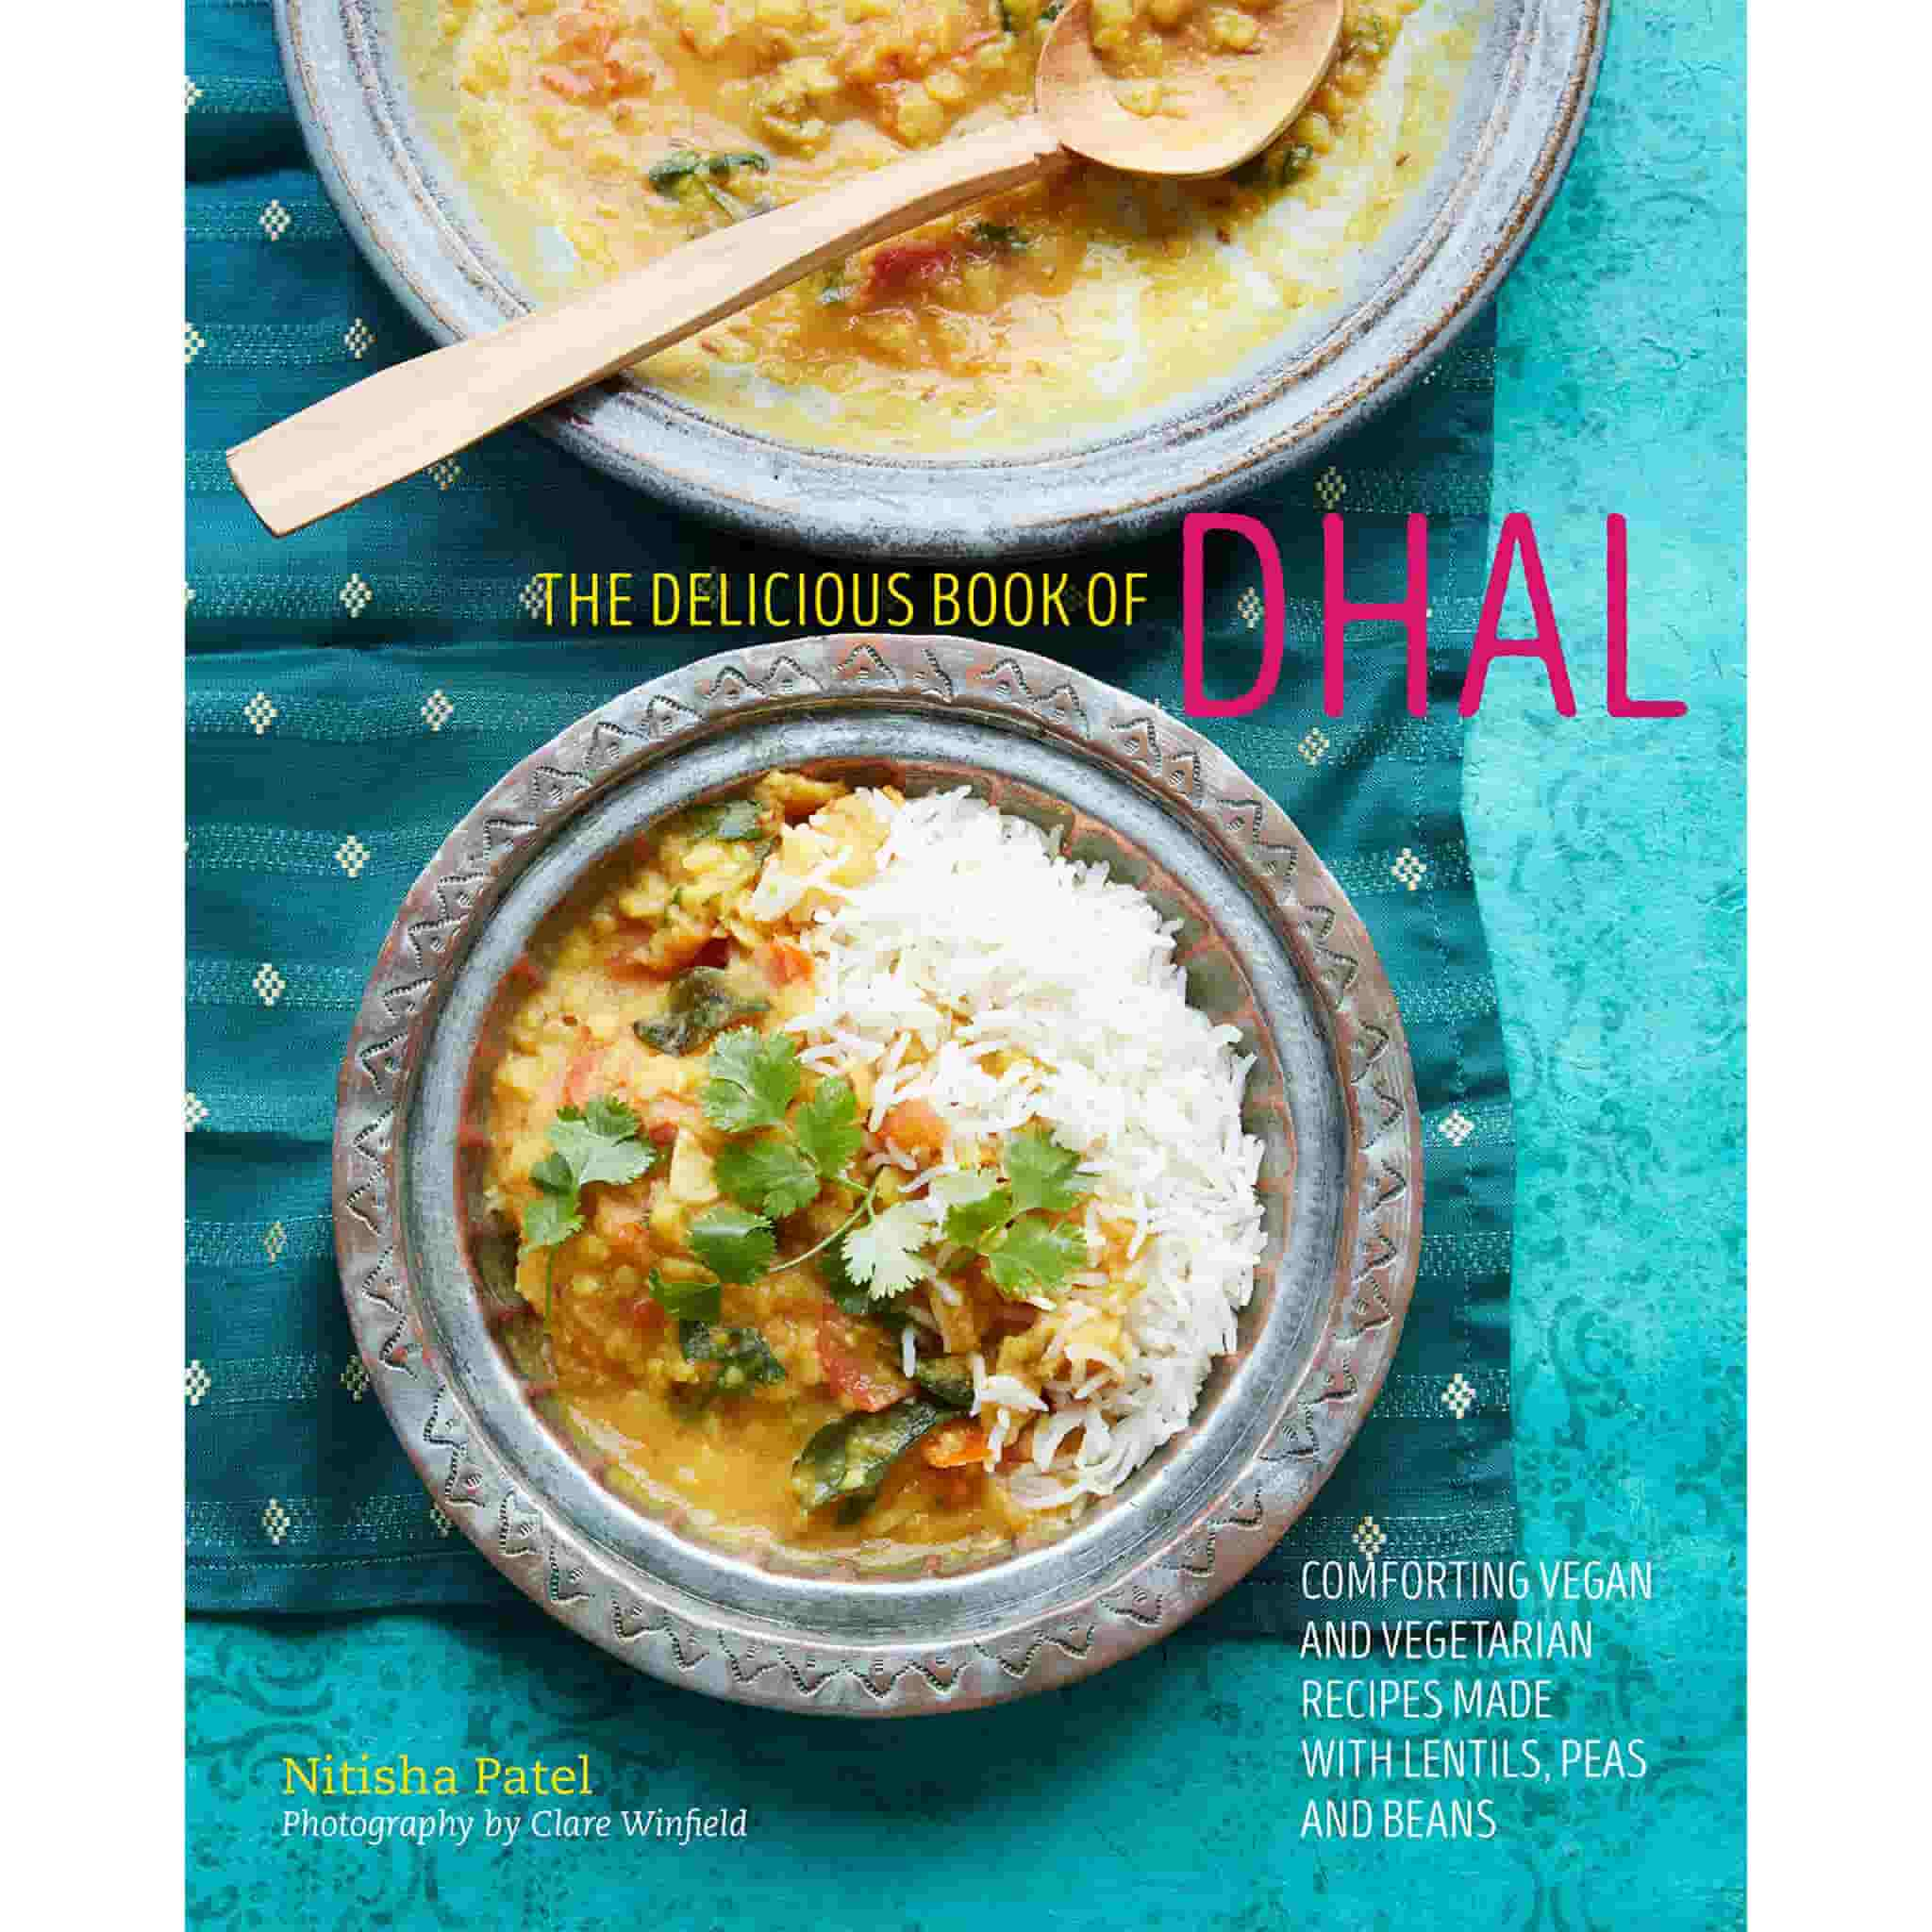 The Delicious Book of Dhal by Nitisha Patel